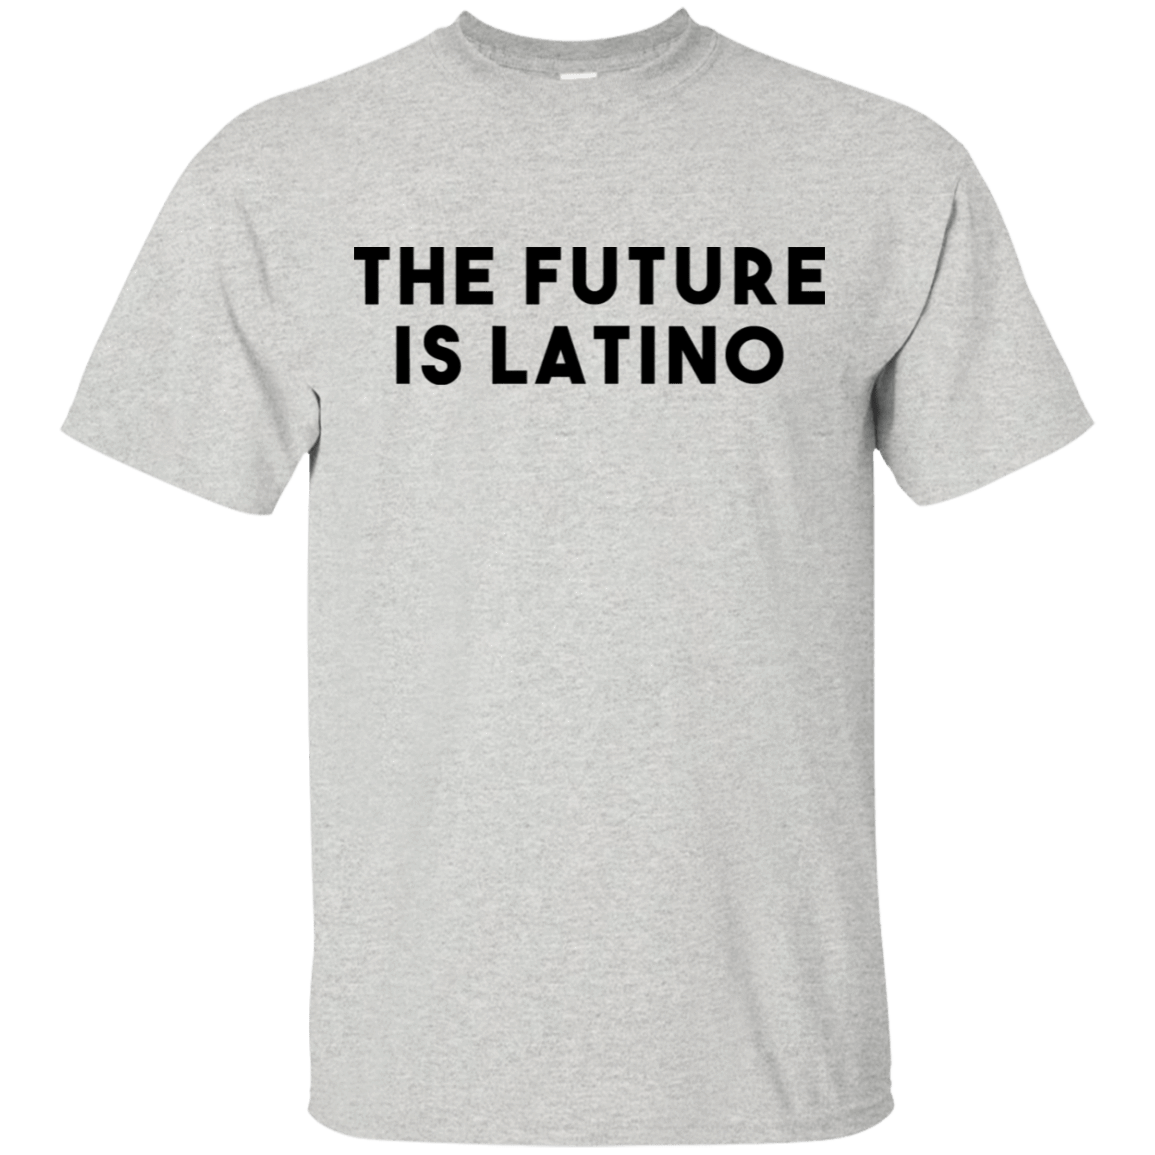 The Future Is Latino 22-2475-73057004-12568 - Tee Ript